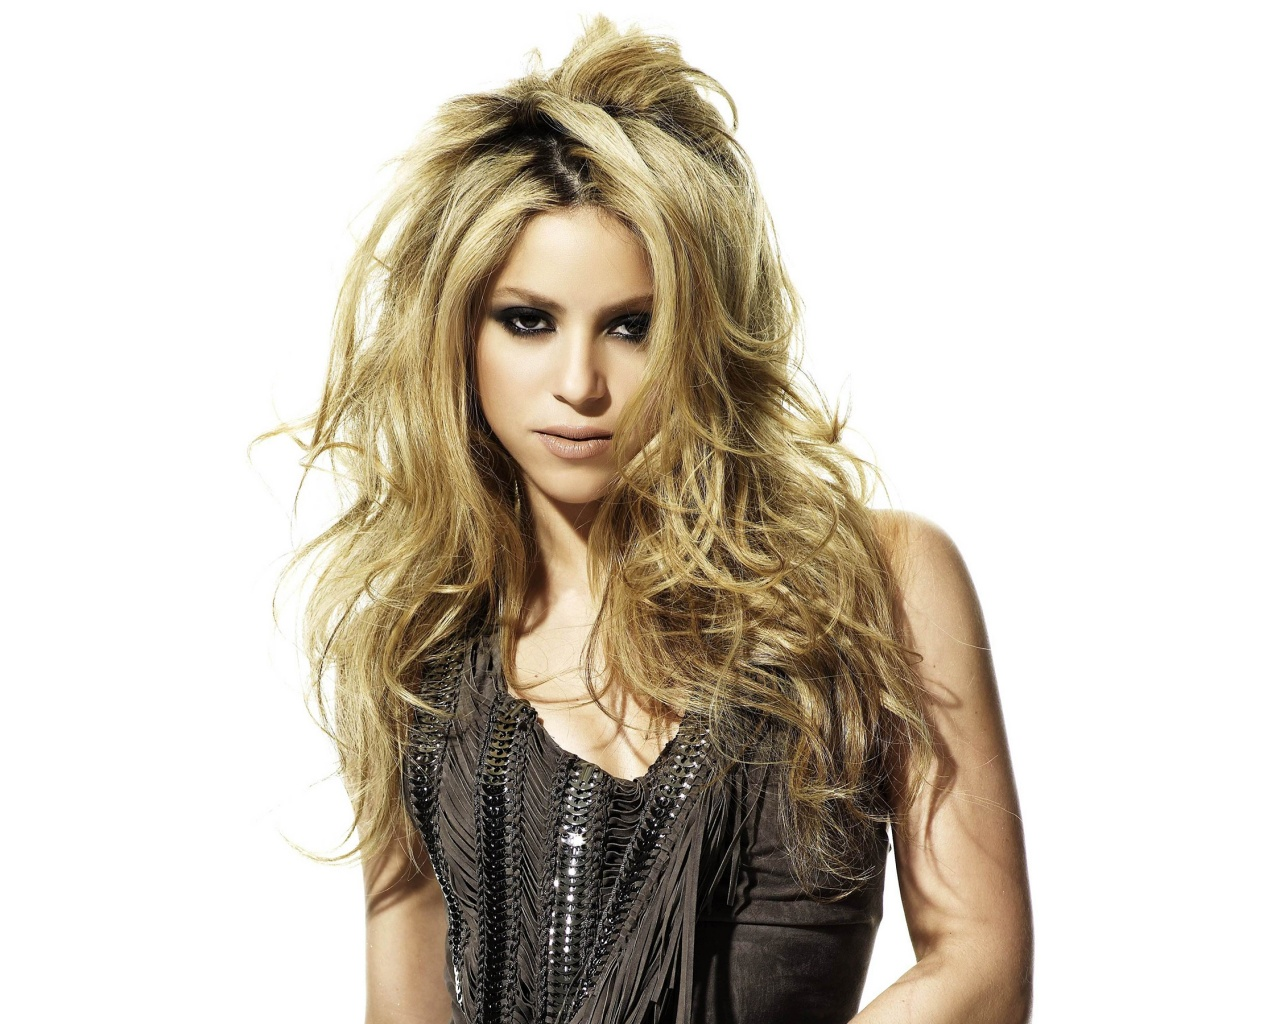 Description: The Wallpaper above is Shakira singer Wallpaper in Resolution 1280x1024. Choose your Resolution and Download Shakira singer Wallpaper